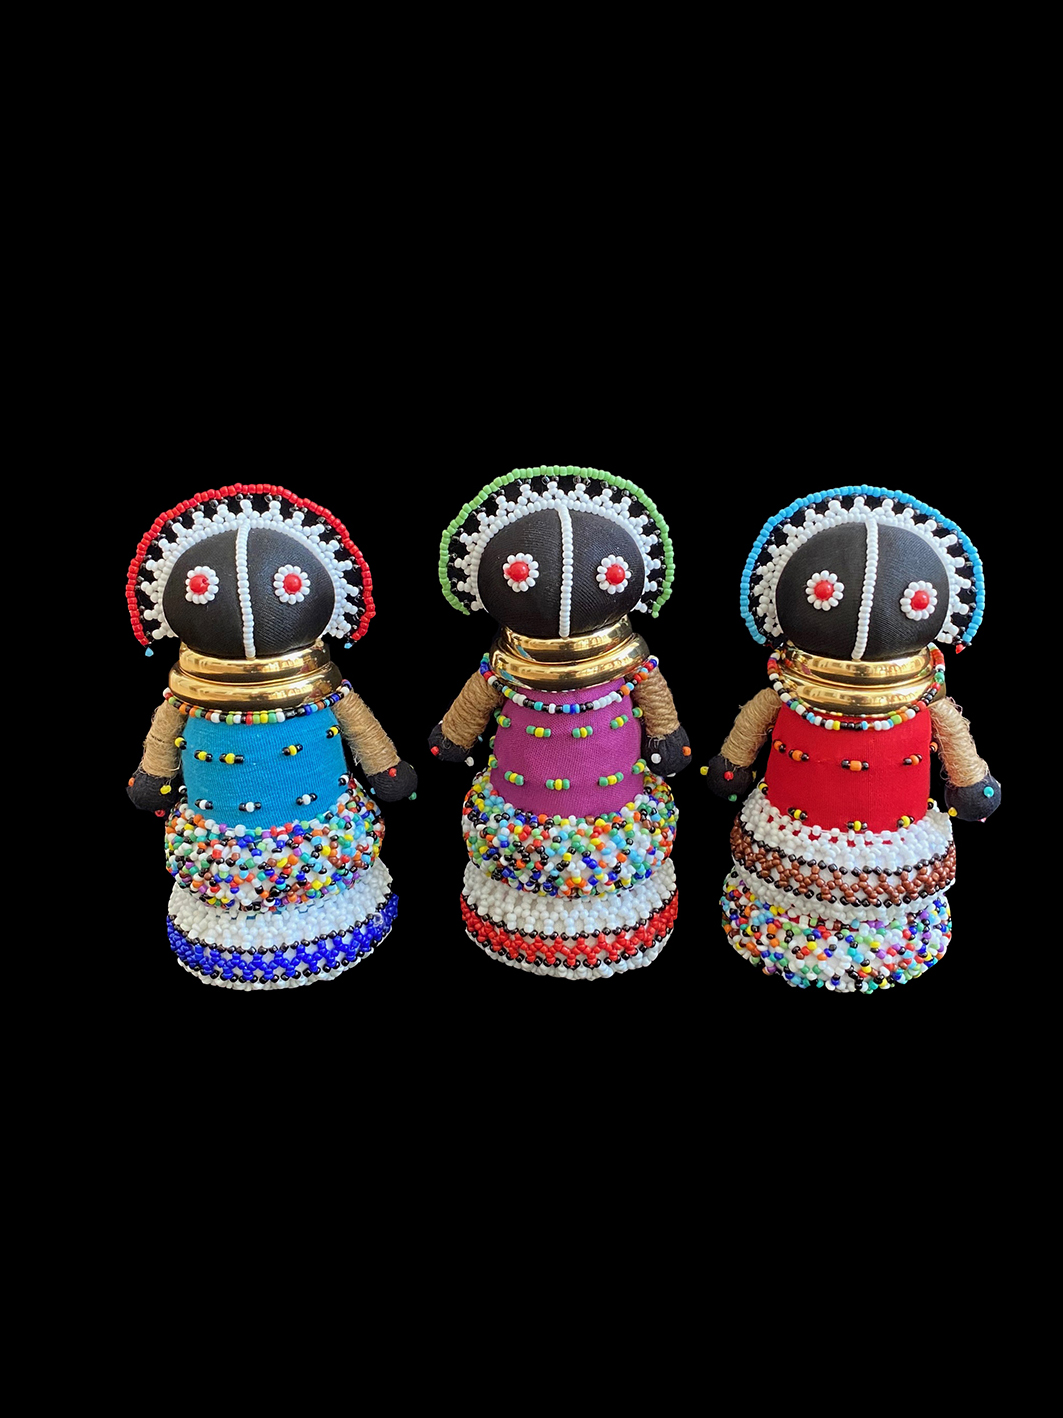 Fertility Dolls - Ndebele People, South Africa